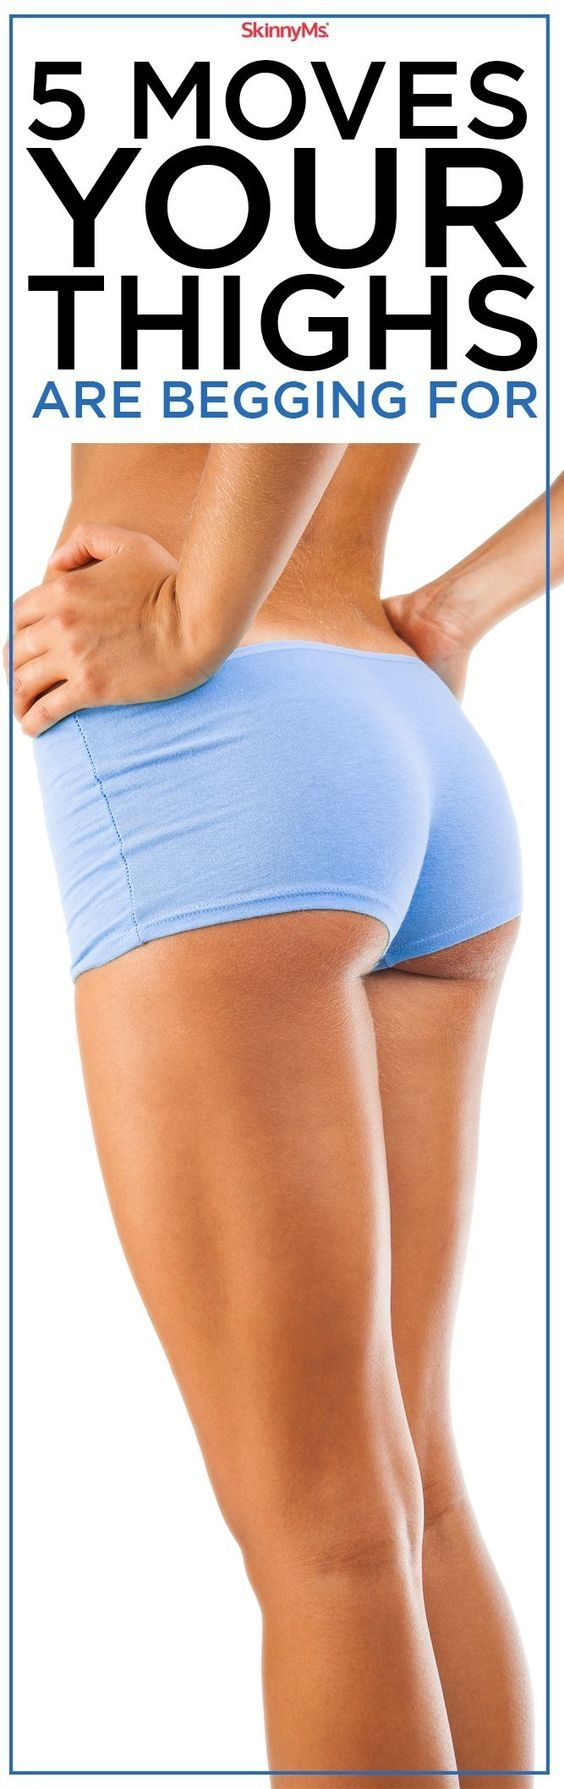 5 Moves Your Thighs Are Begging For by cutedimon